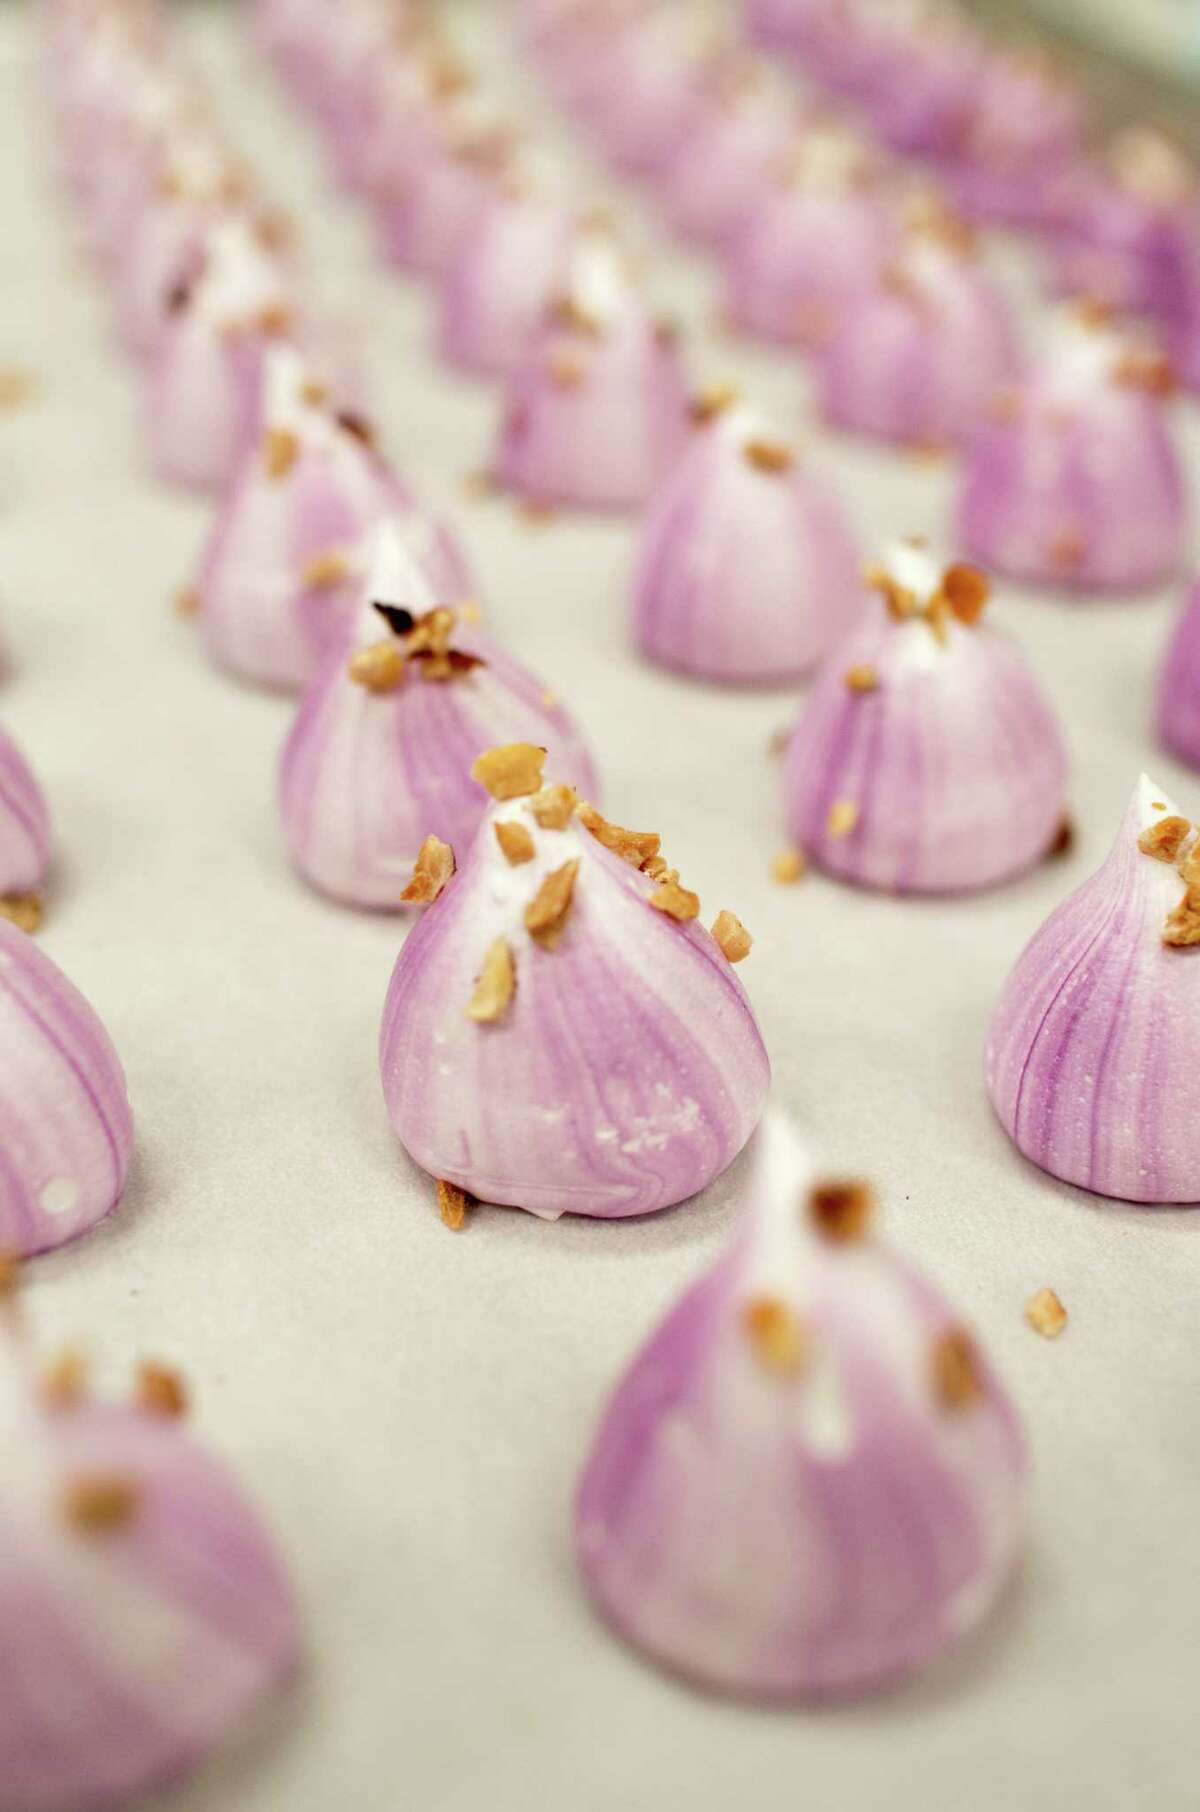 Monterey Meringues fresh out of the oven in Watsonville. Owners Domenick Allen and wife Leigh Zimmerman, both former performers, infused the classic treats with a classic-rock sensibility.